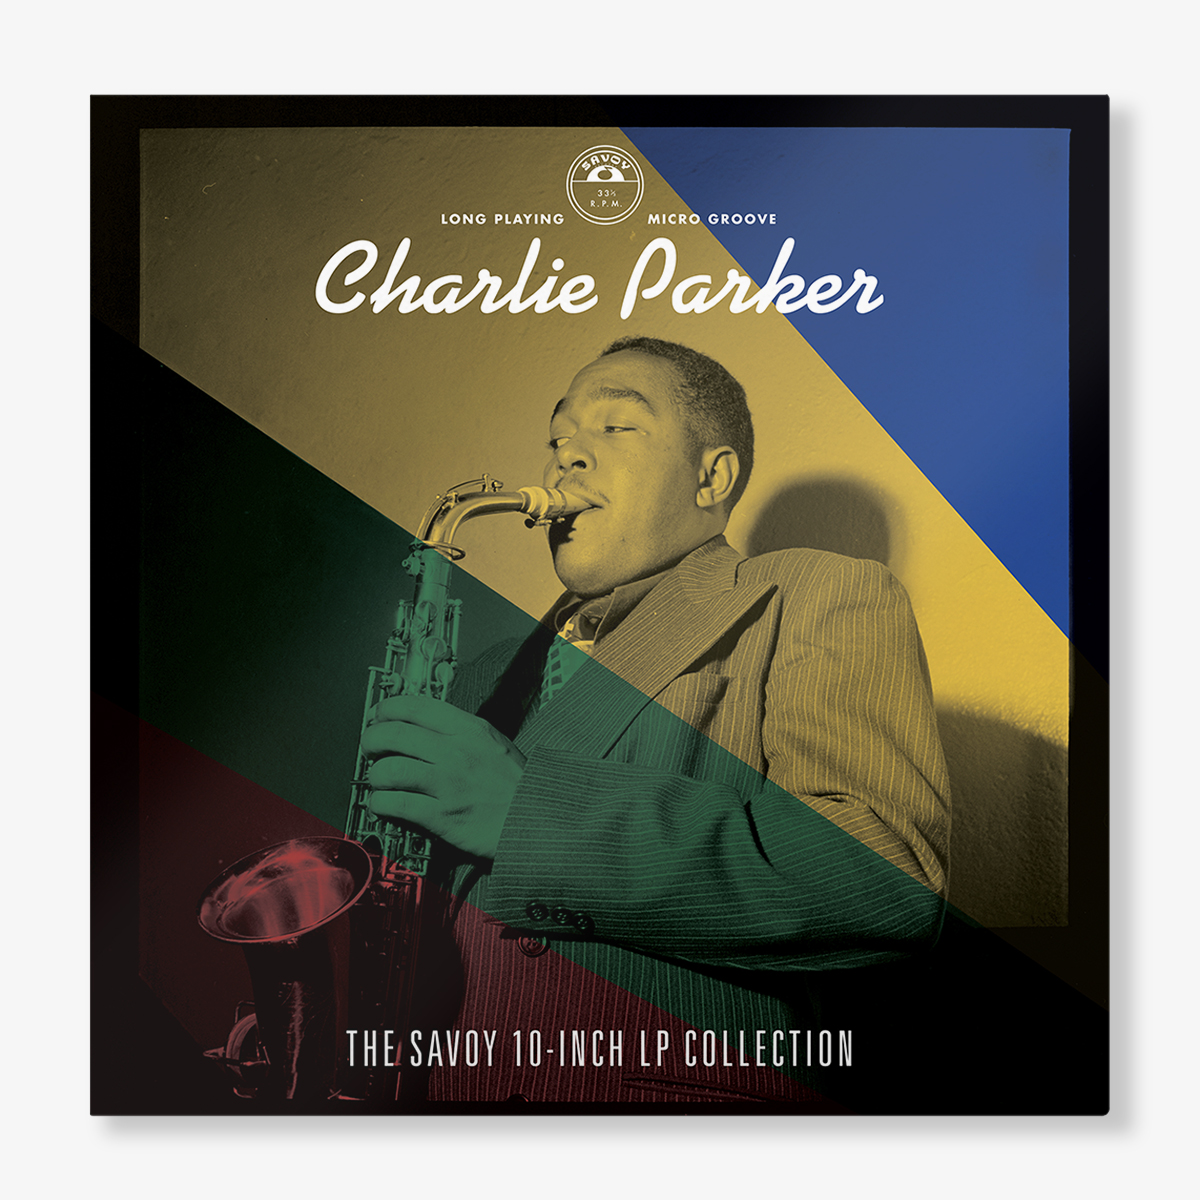 Charlie Parker - Savoy 10-Inch Lp Collection (UHQCD)